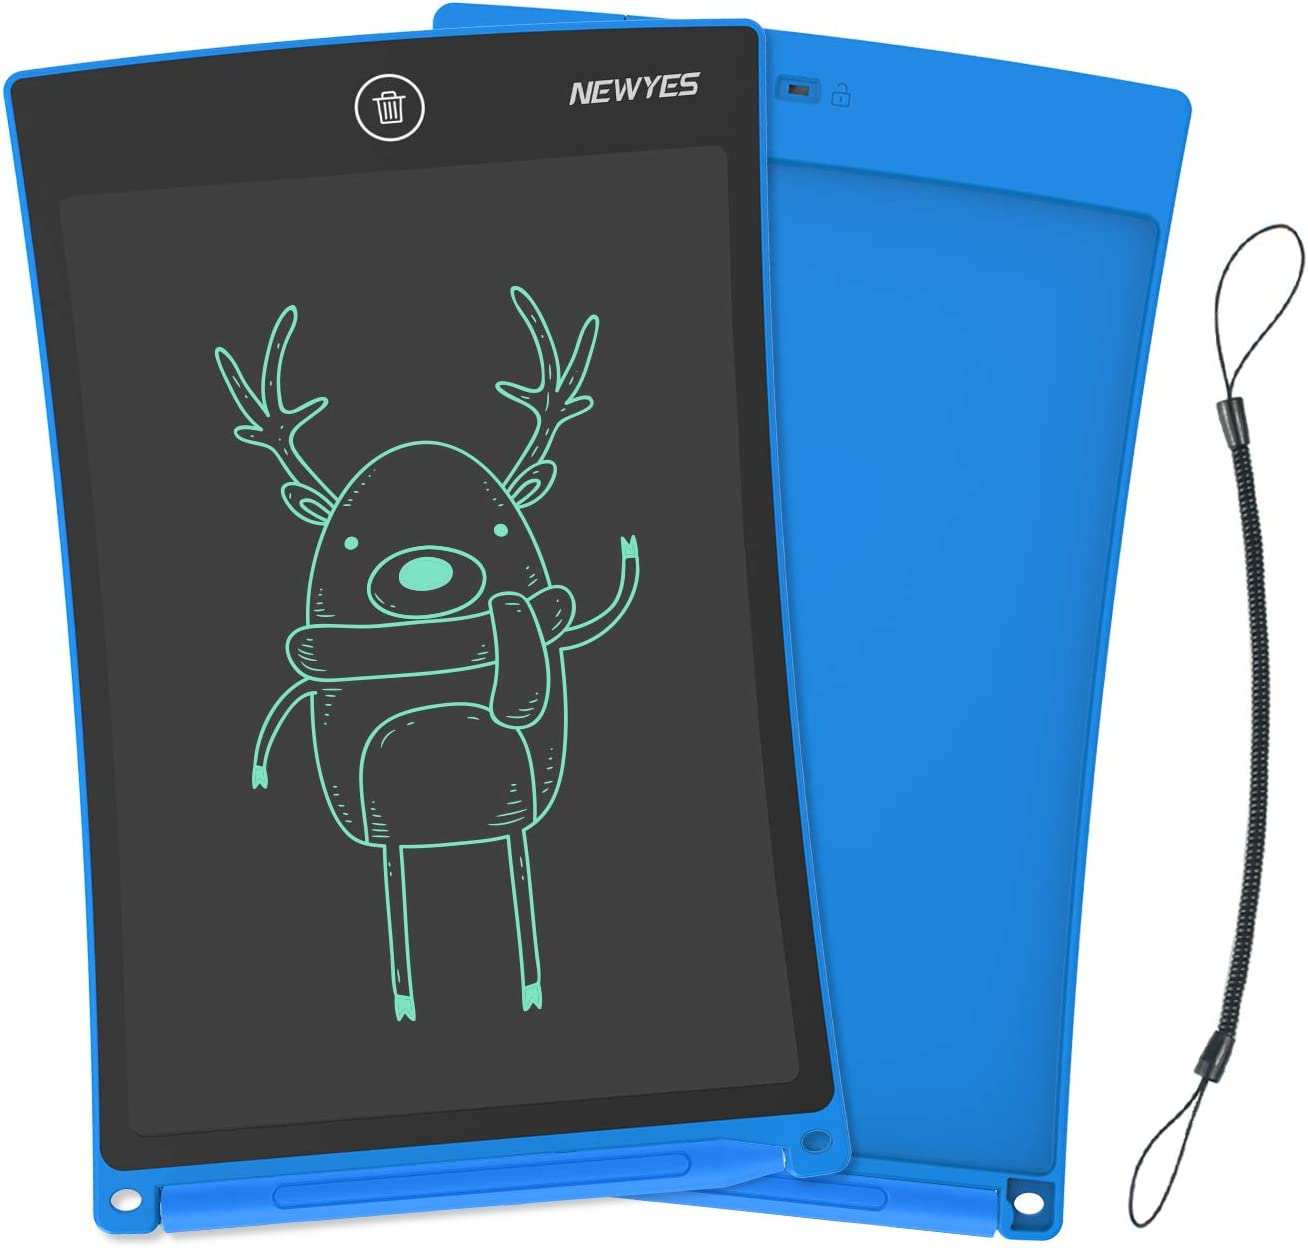 NEWYES 8.5 Inches LCD Writing Tablet Robot Pad Kids Drawing Board Digital Doodle Pad Electronic Drawing Notepad Pink